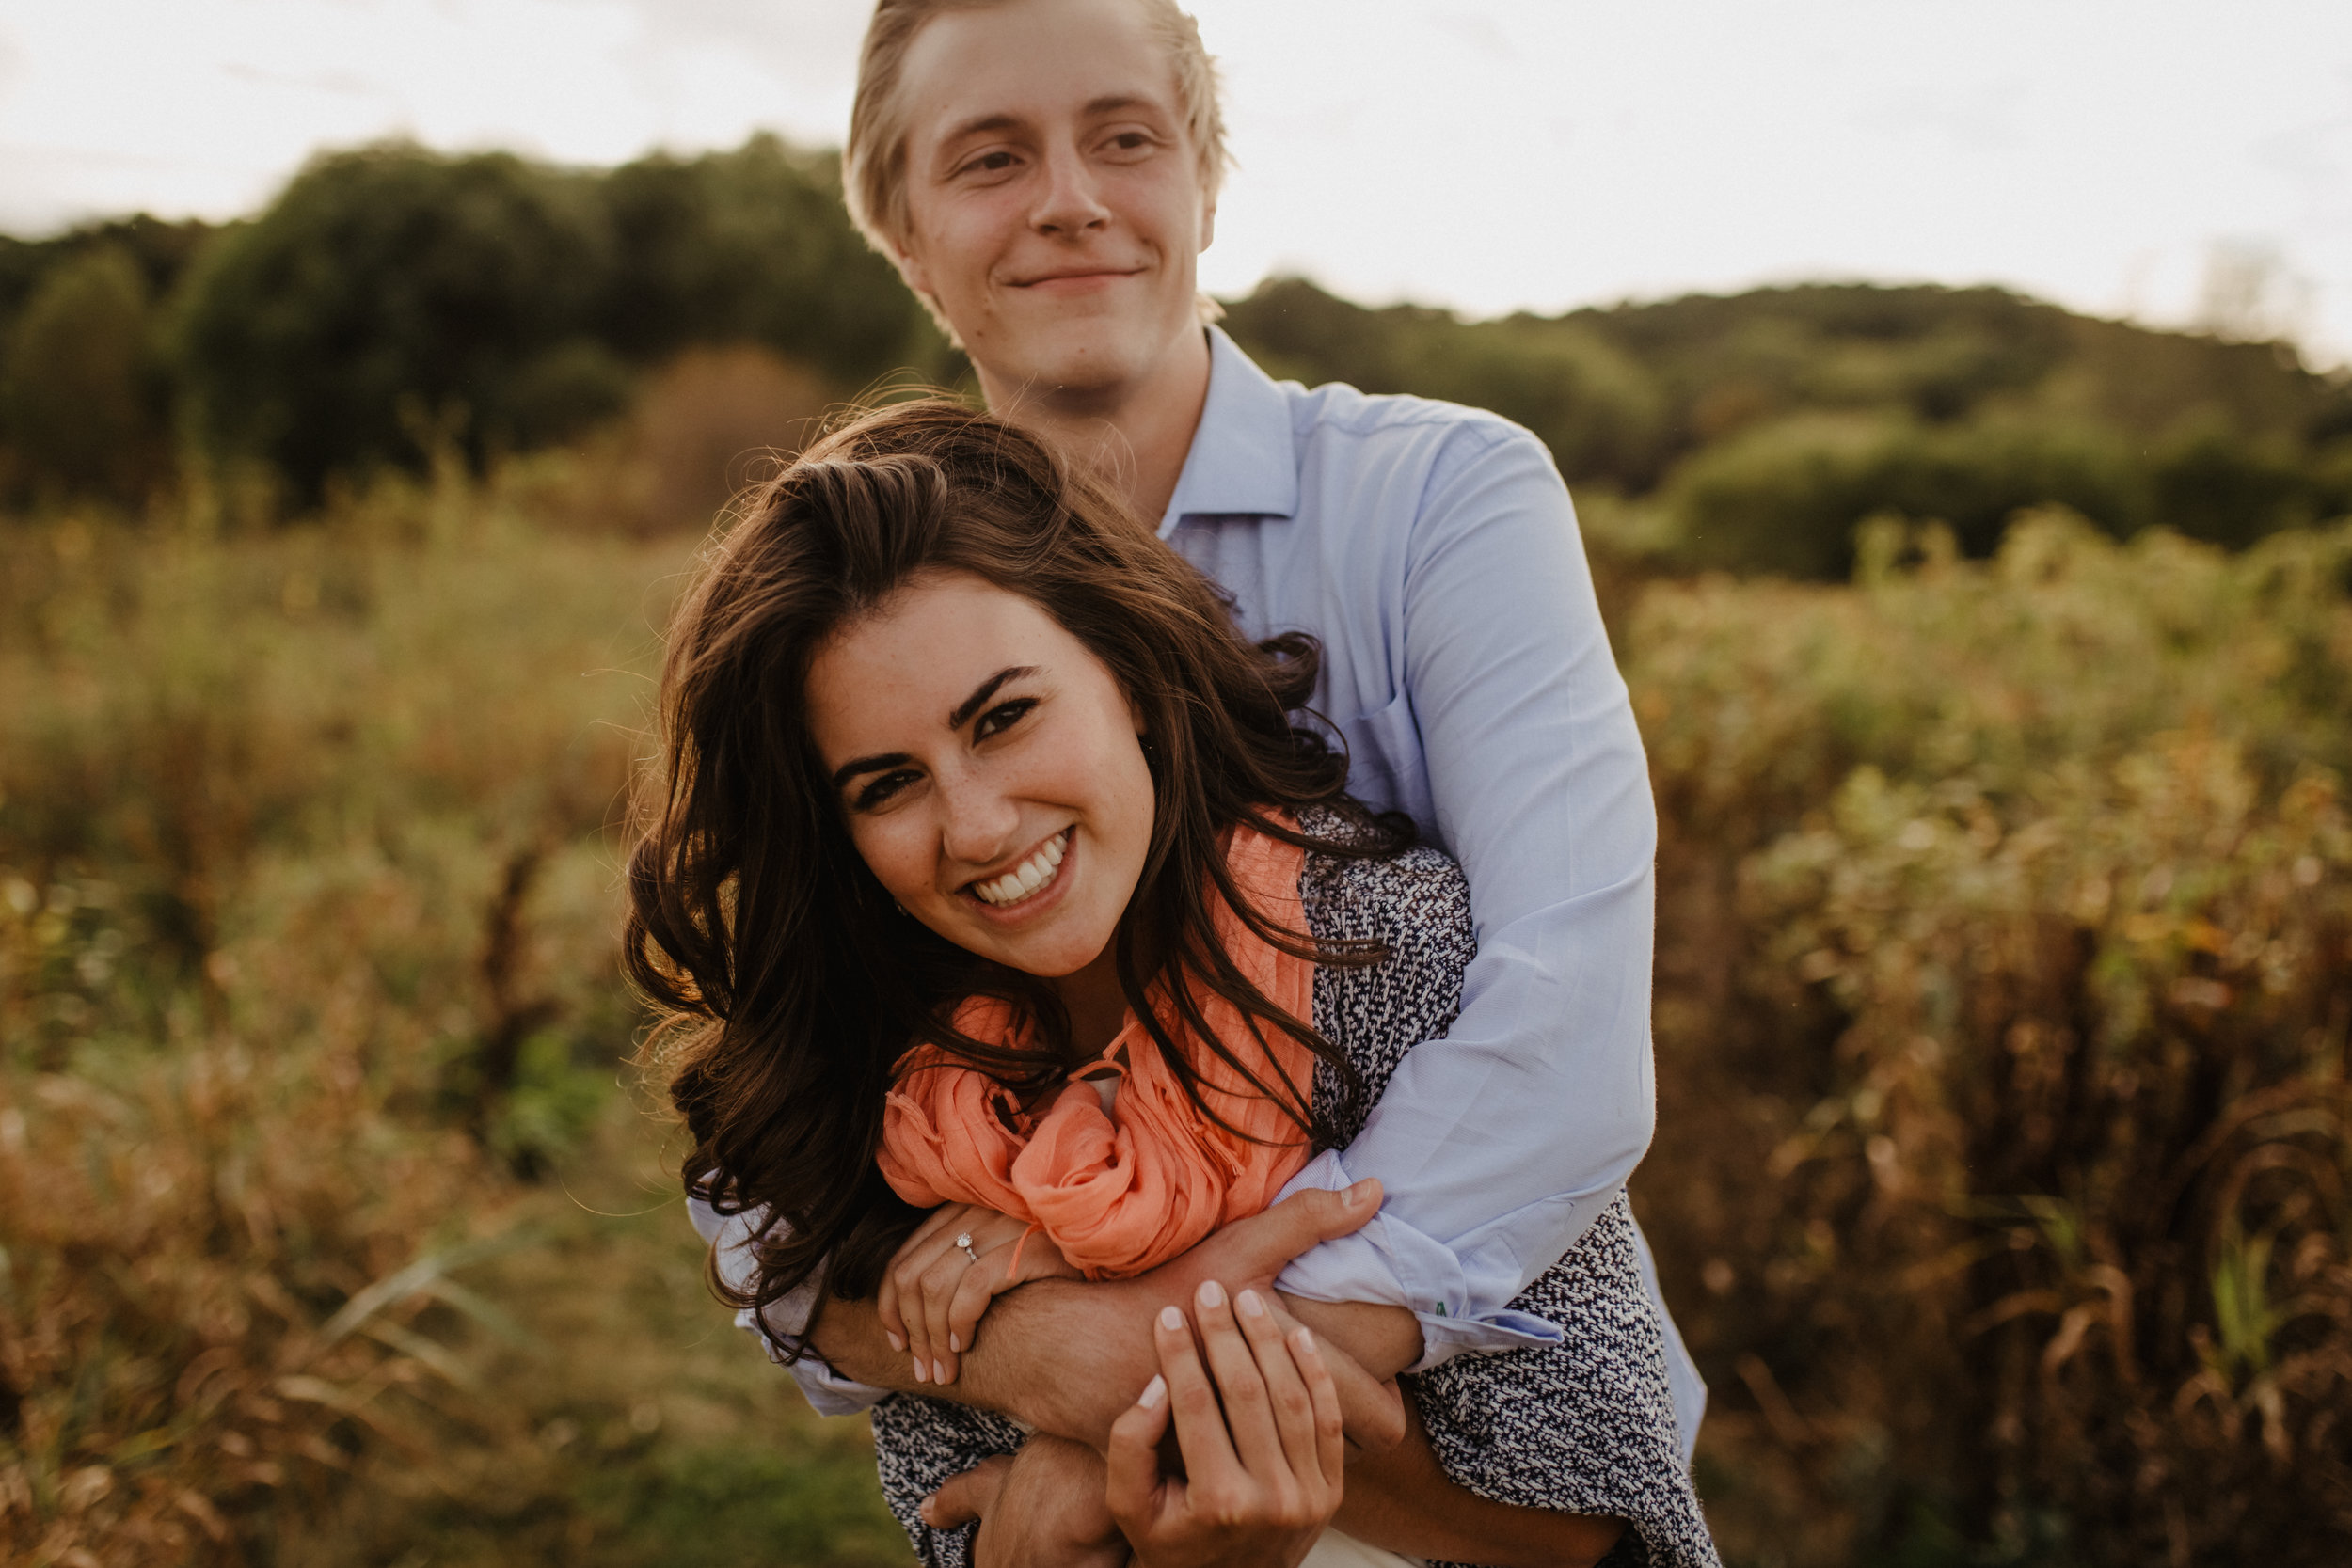 Claire-Rex-Pickar-Engagement-Photography-Collection-254.jpg